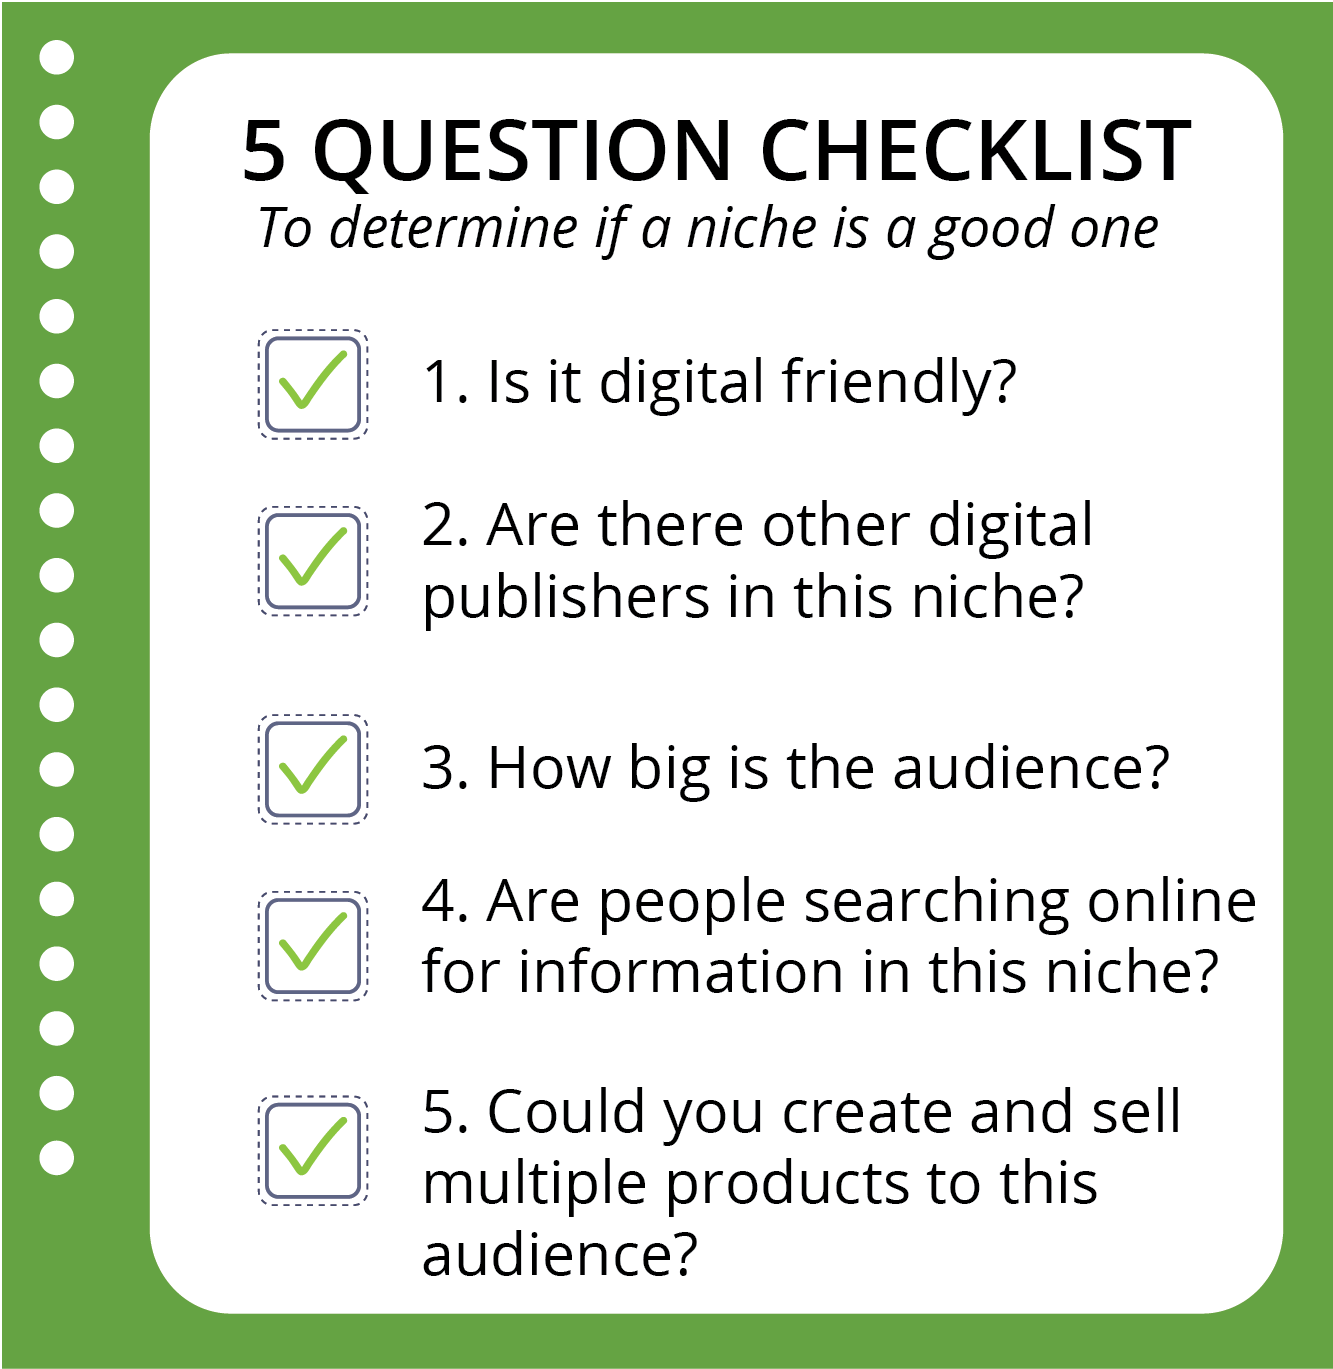 5 Question Niche Checklist